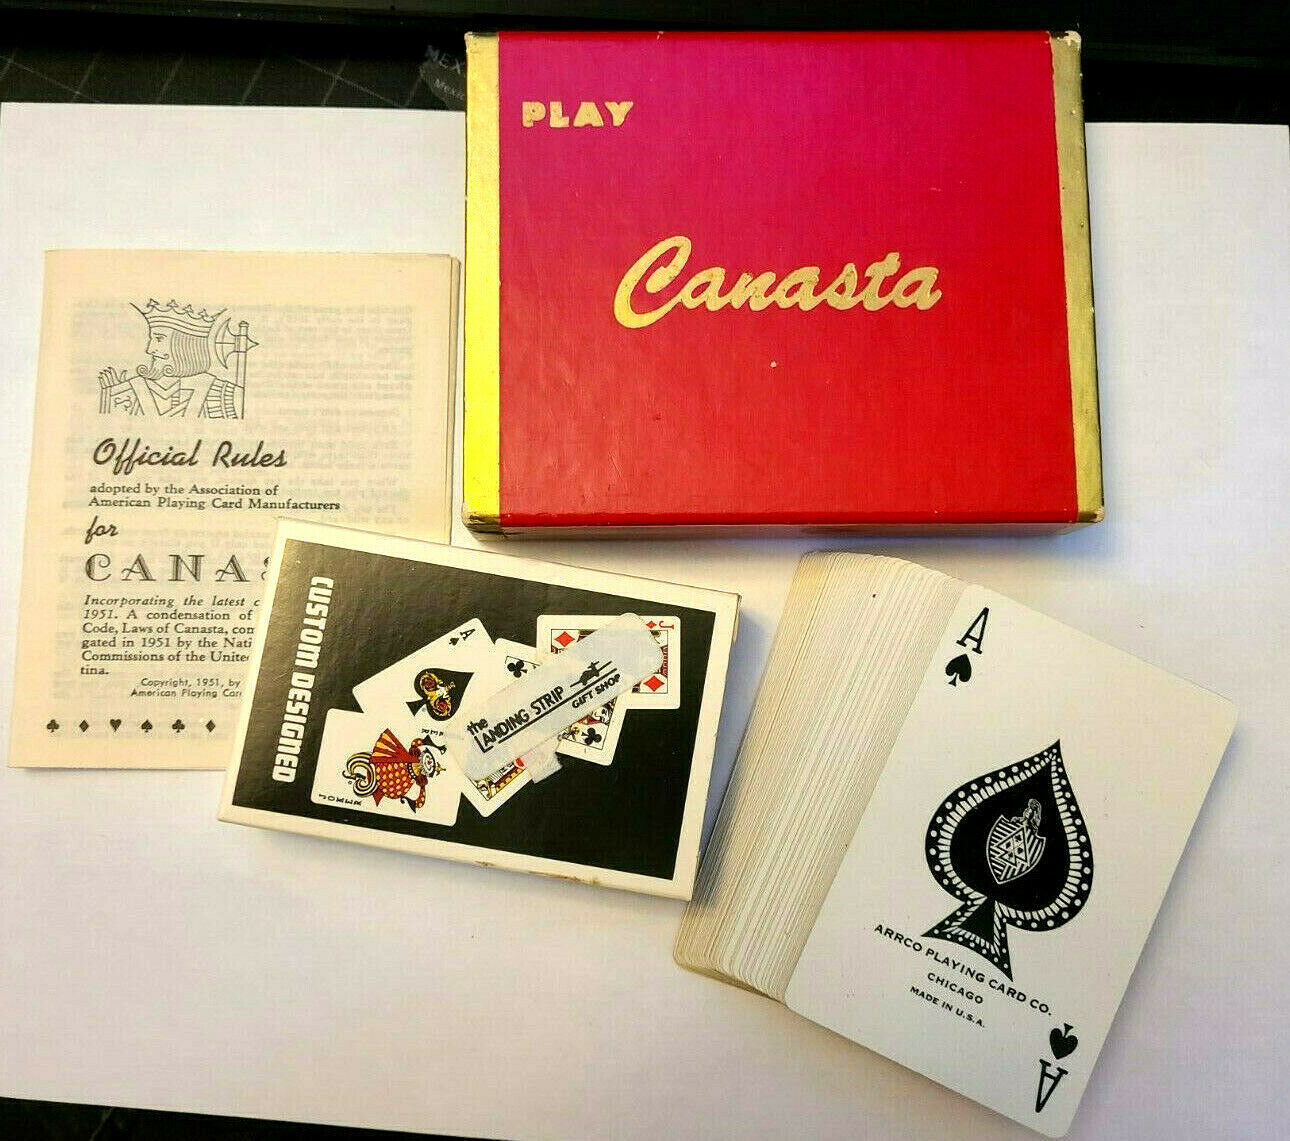 PLAY Canasta Double Deck Playing Cards Arrco Playing Card Co. Chicago